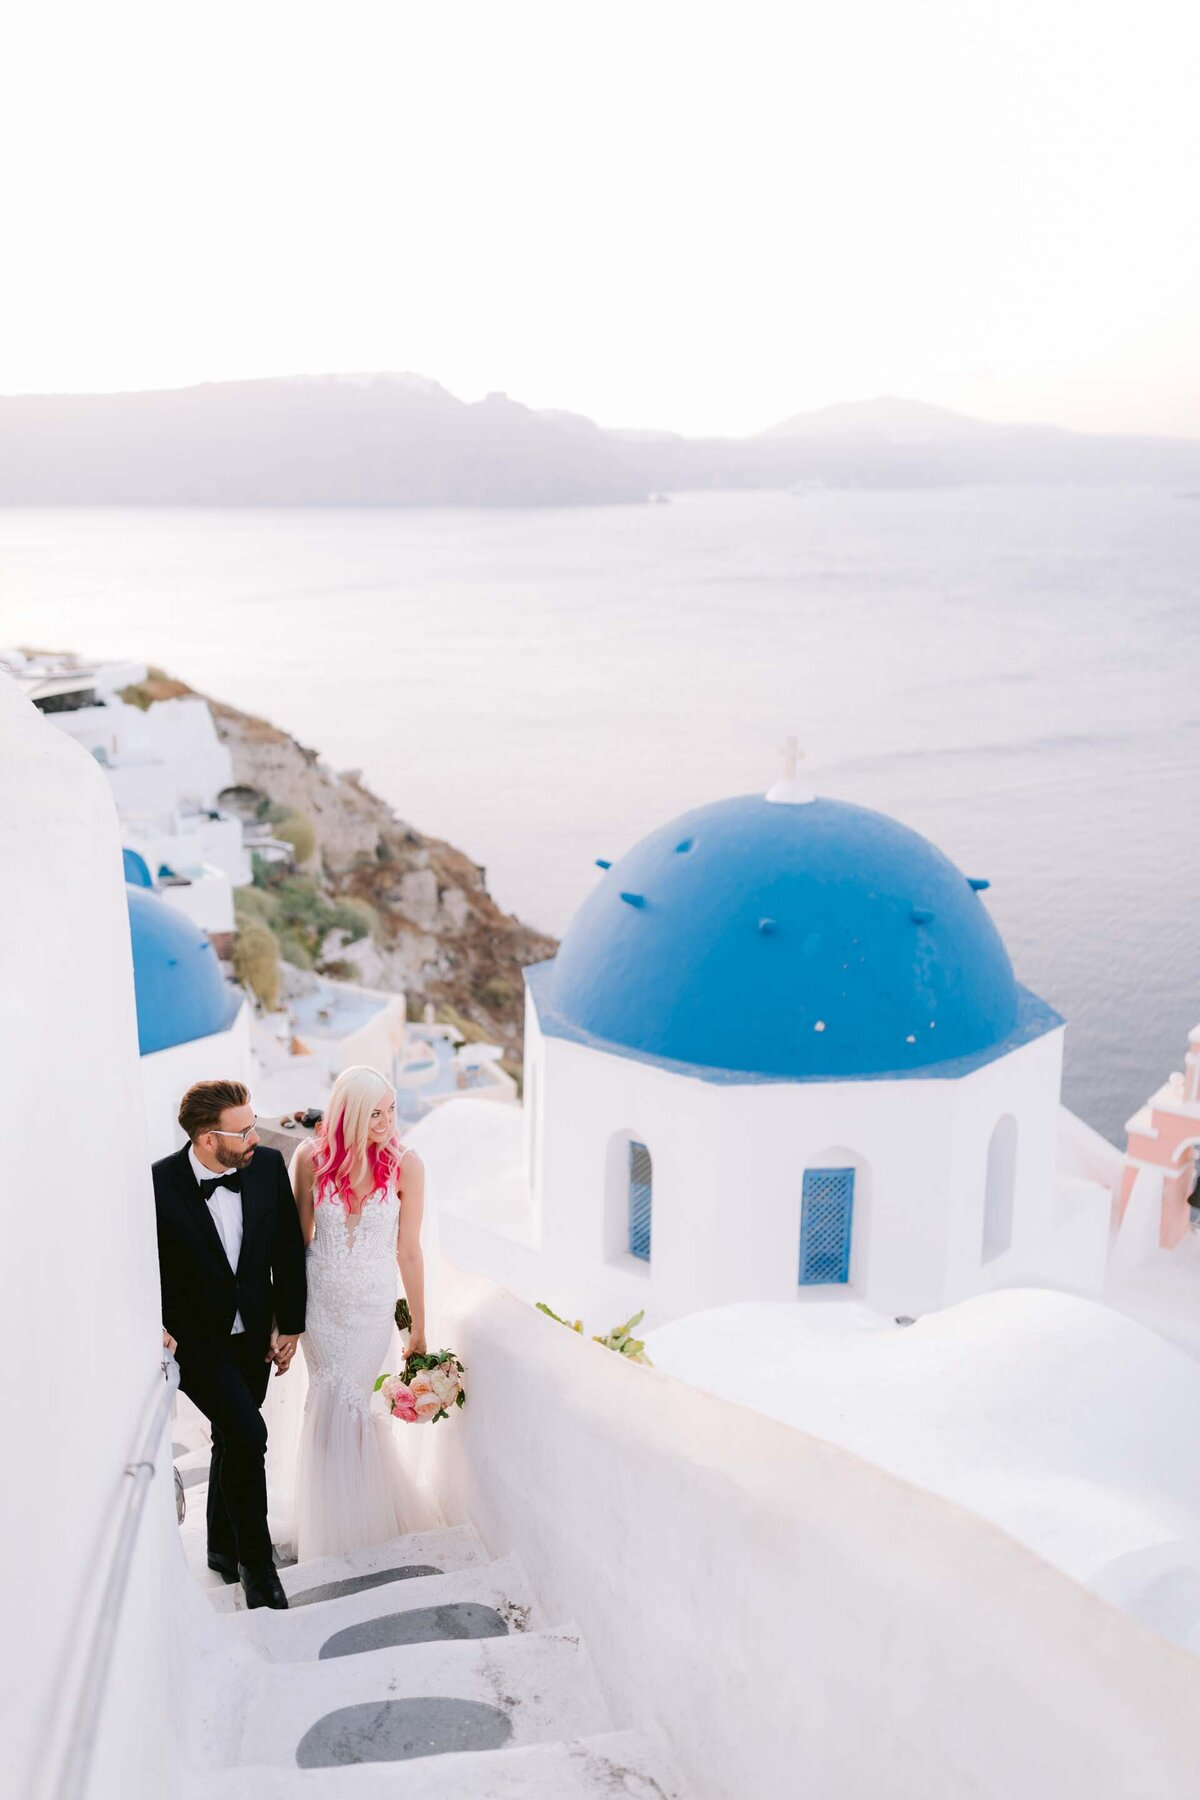 Rocabella-Santorini-Greece-Wedding-Photographer-Photographer-25-DT